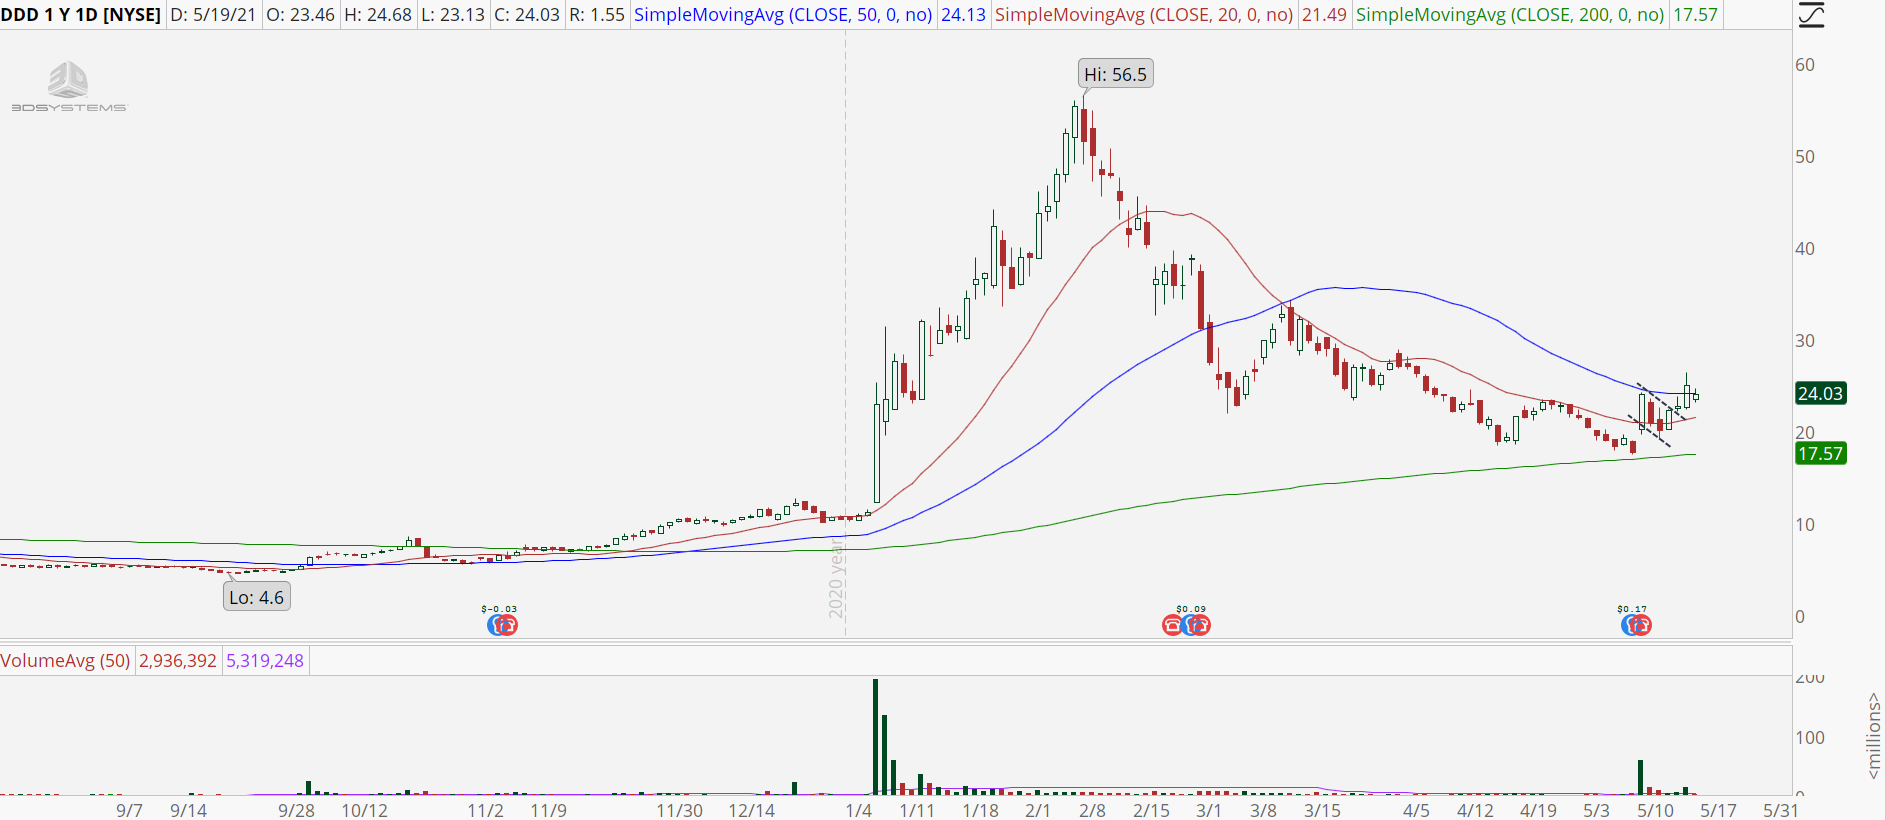 3D Systems (DDD) stock chart with short-term uptrend